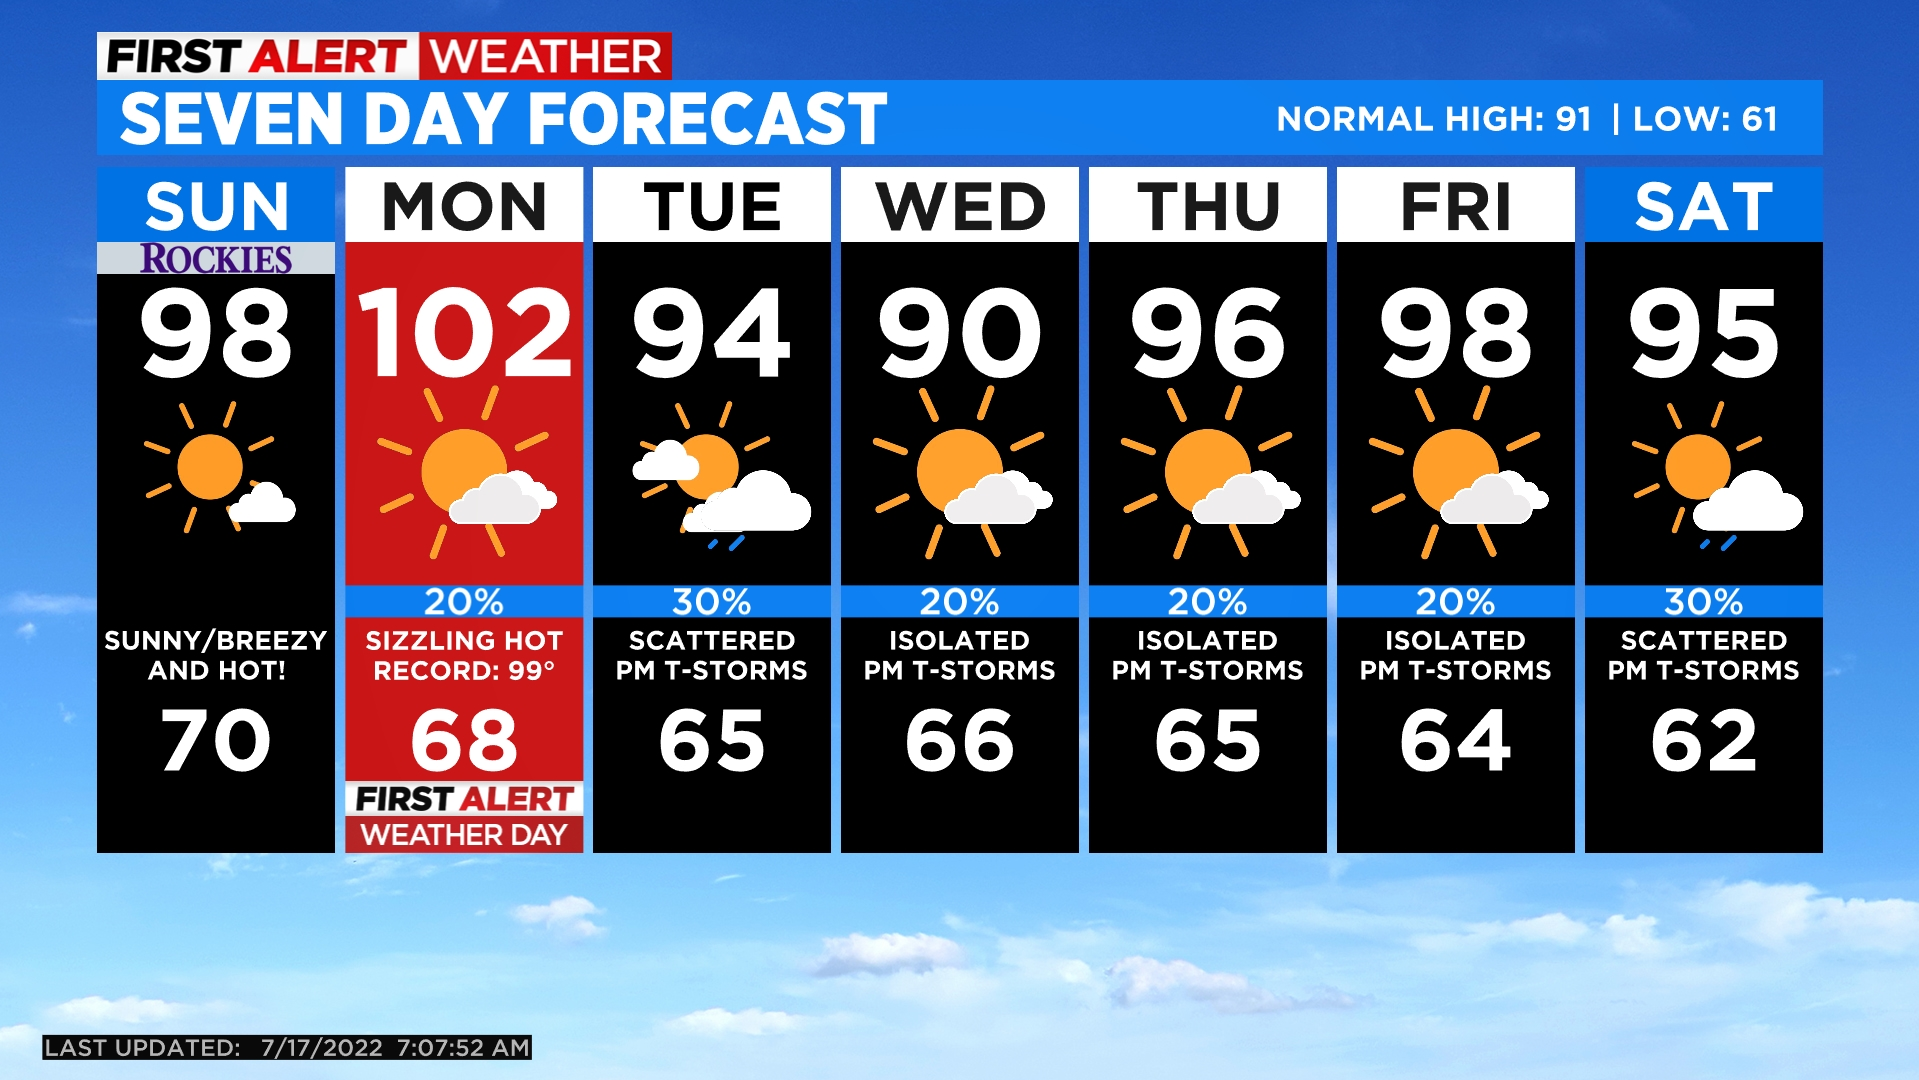 5day Record High Temperatures On The Way